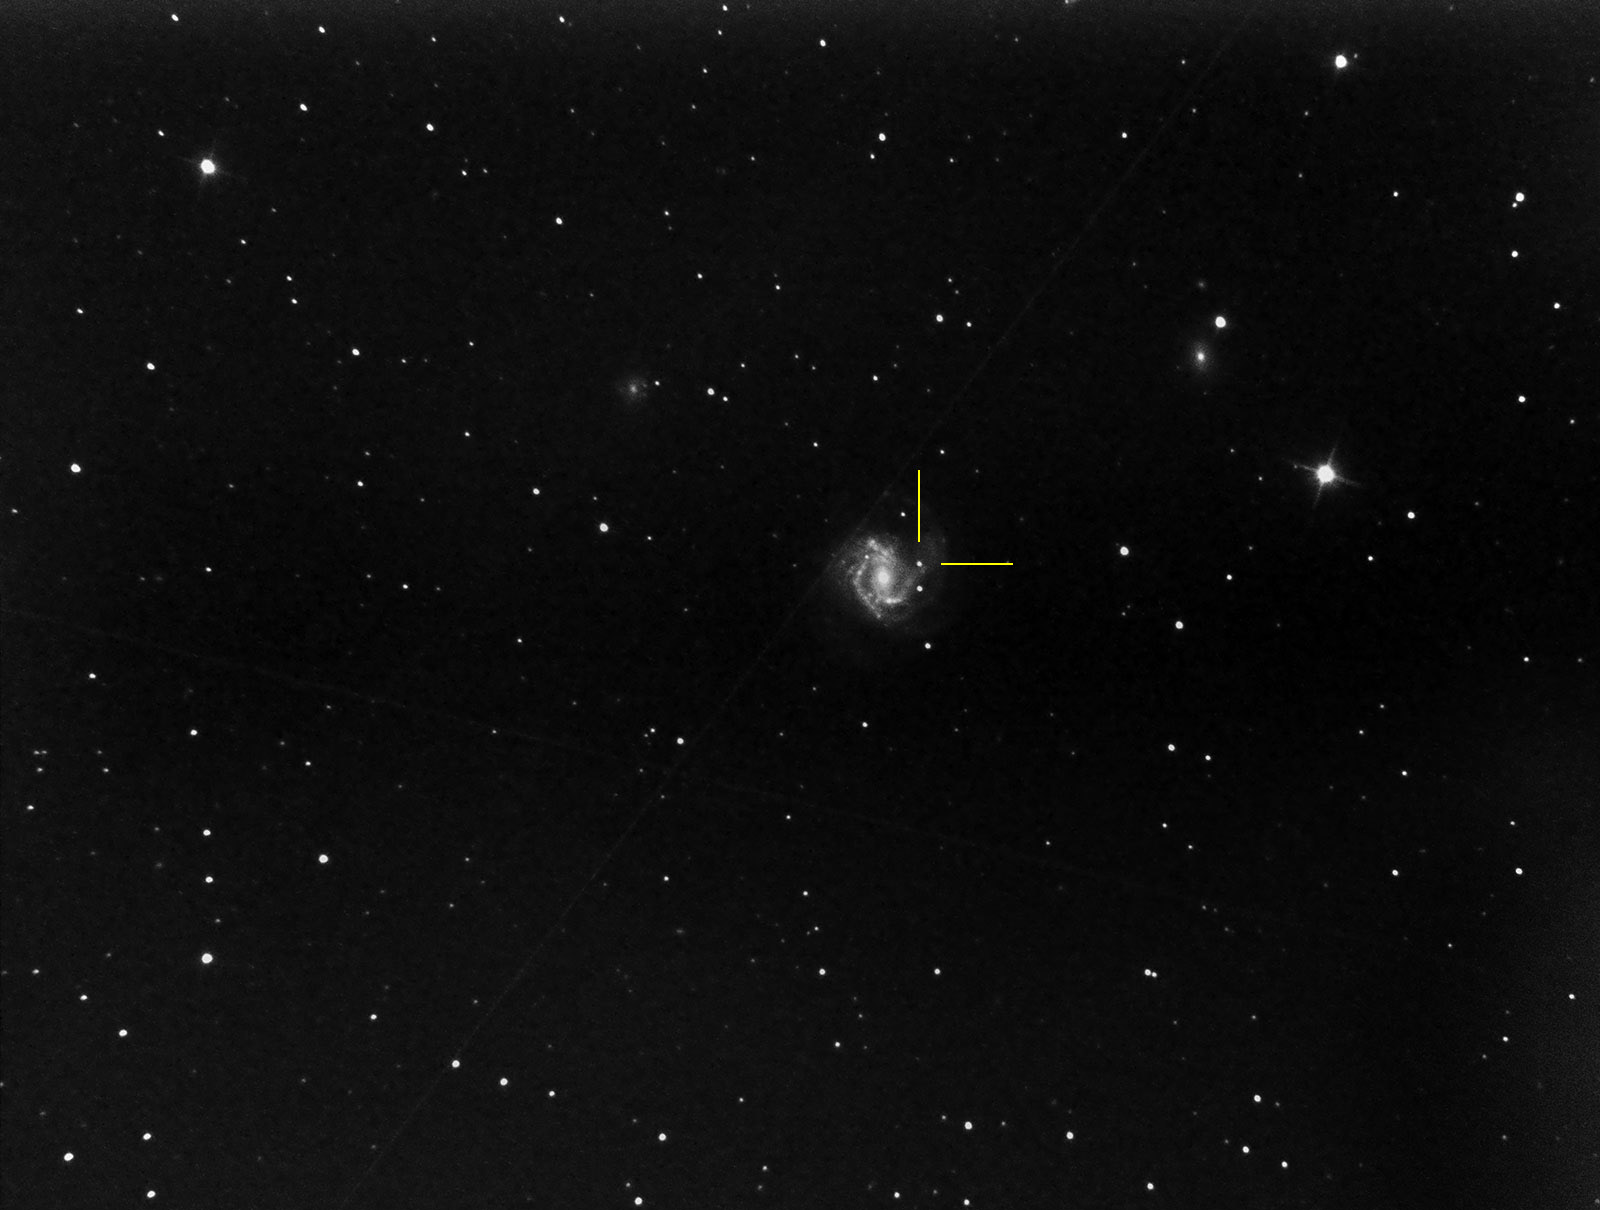 M61 in Virgo with supernova SN2020jfo indicated on May13th. This supernova was first detected May 6 2020, so a week earlier. Imaged from Kendal.